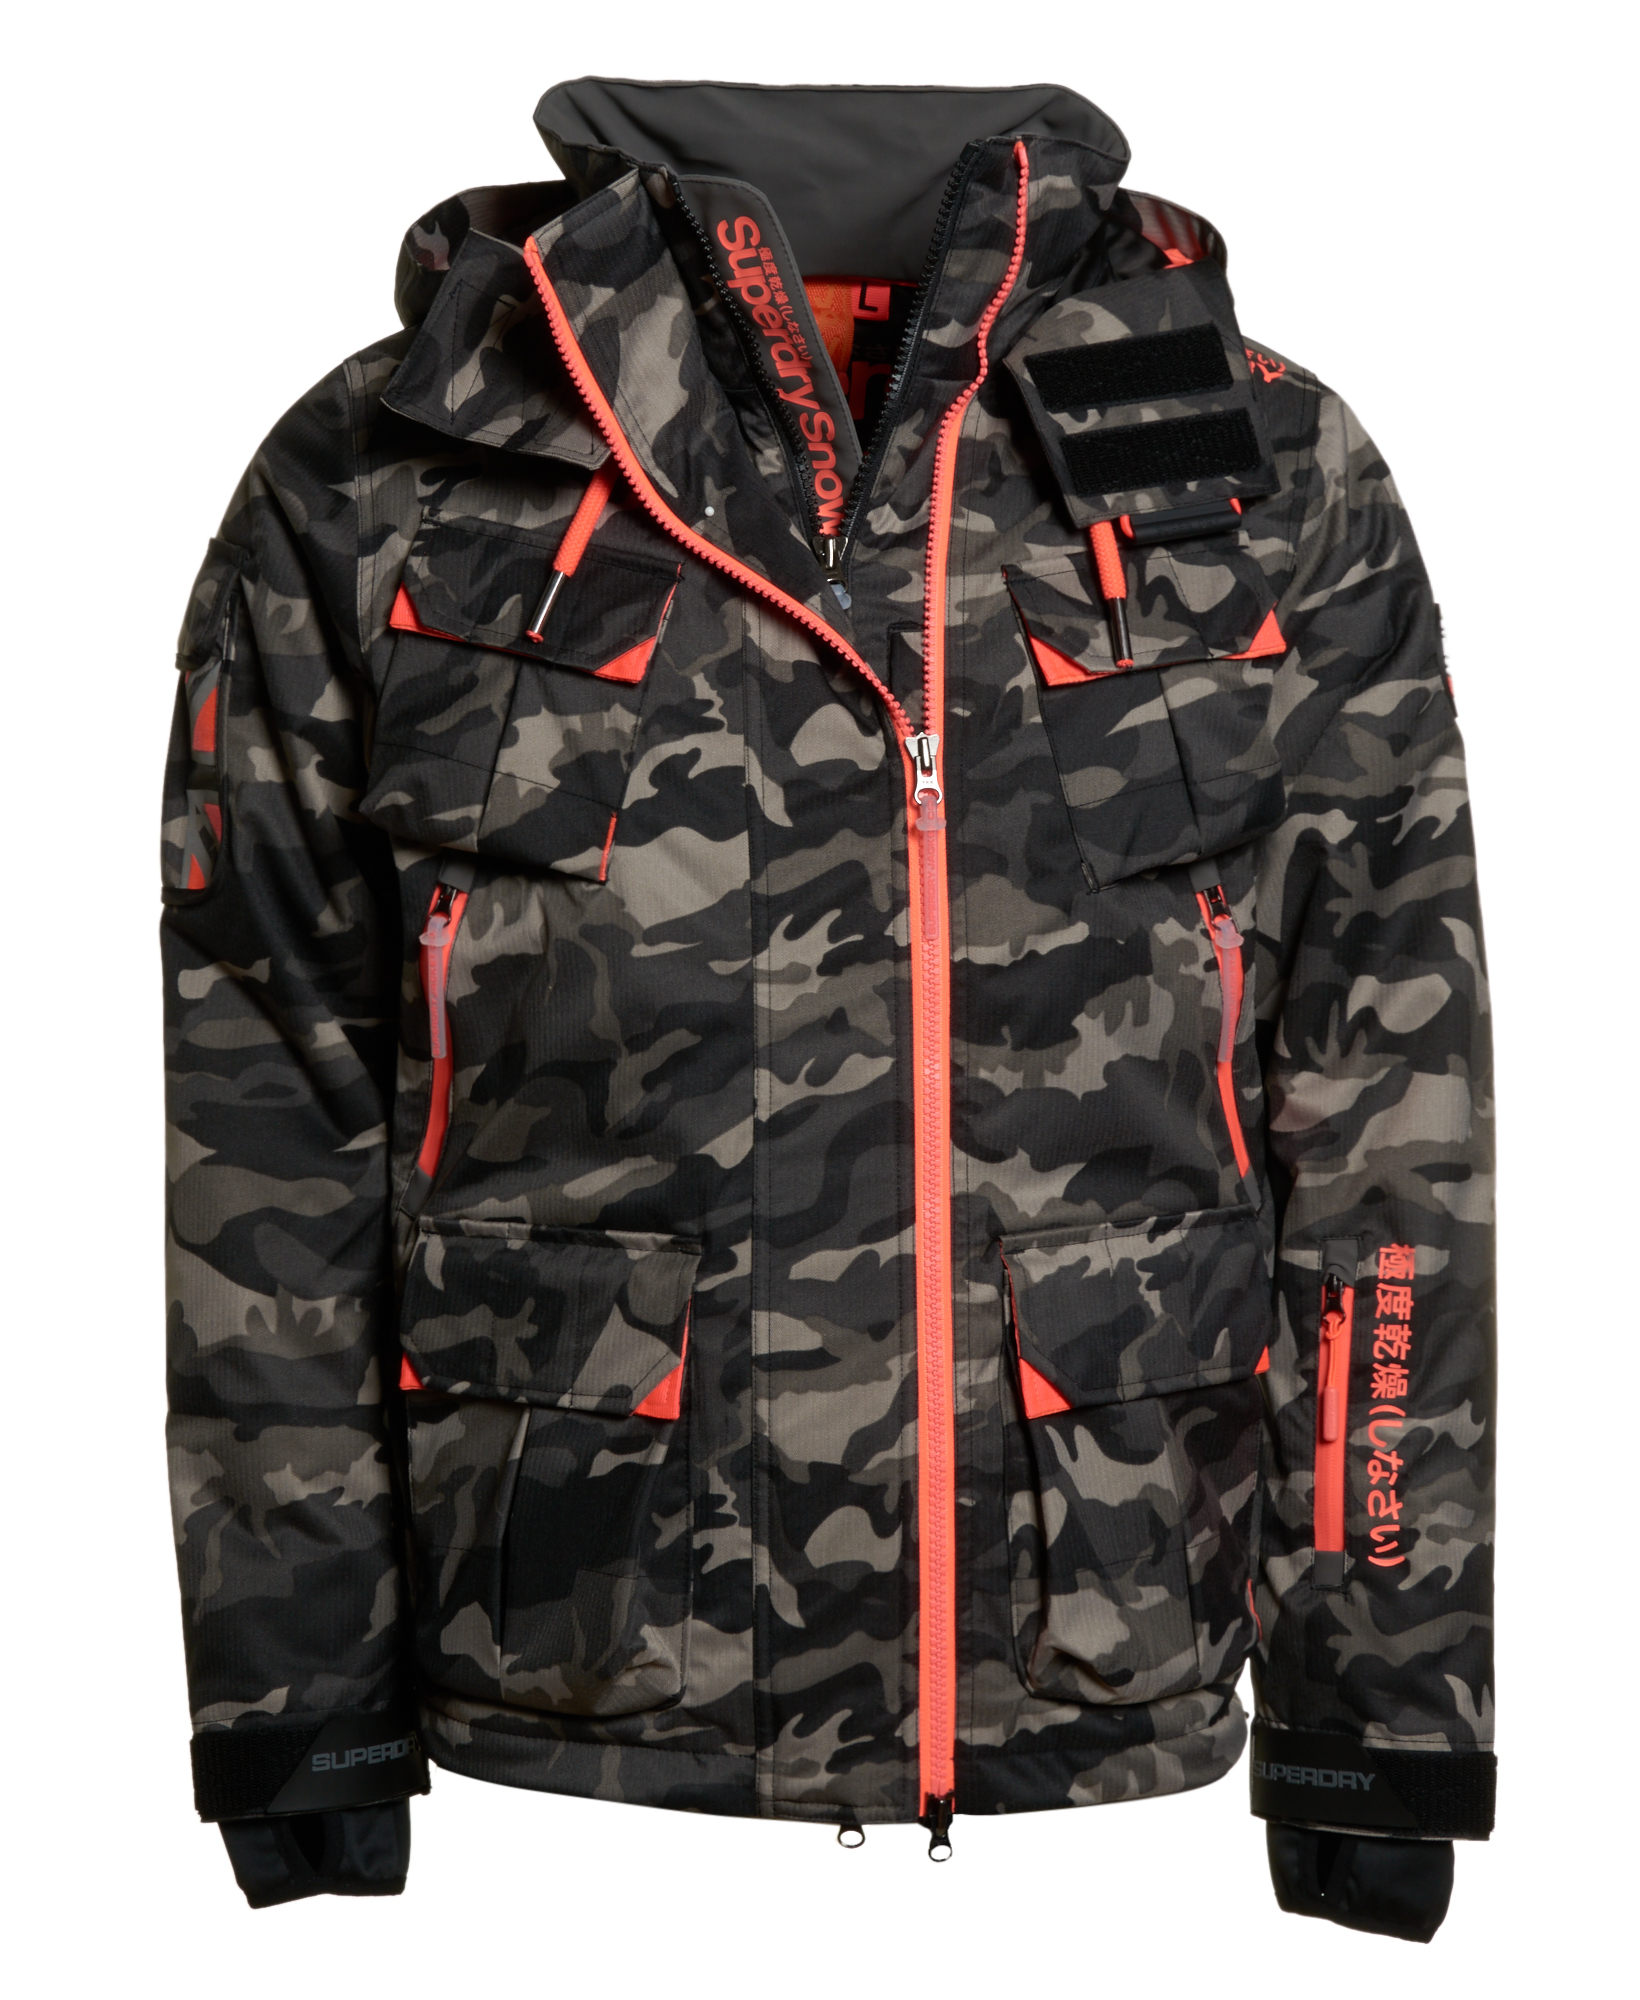 neue herren superdry jacke ultimate snow service jacket schwarz ice camo ebay. Black Bedroom Furniture Sets. Home Design Ideas